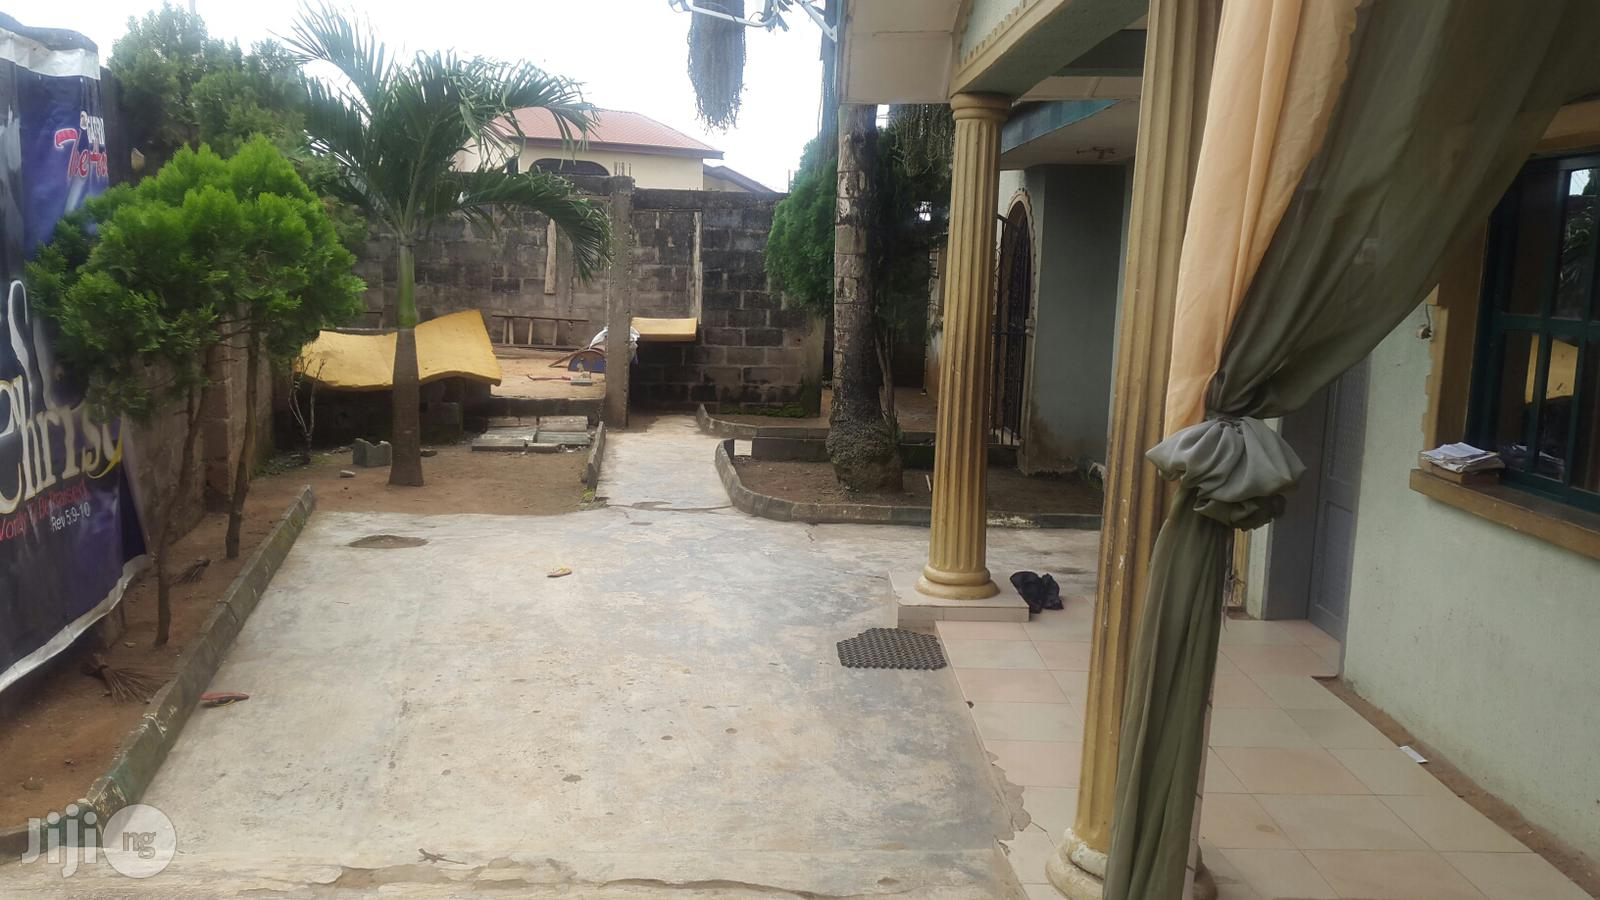 4 Bedroom Bungalow for Sale in Oke Afa Magboro | Houses & Apartments For Sale for sale in Obafemi-Owode, Ogun State, Nigeria